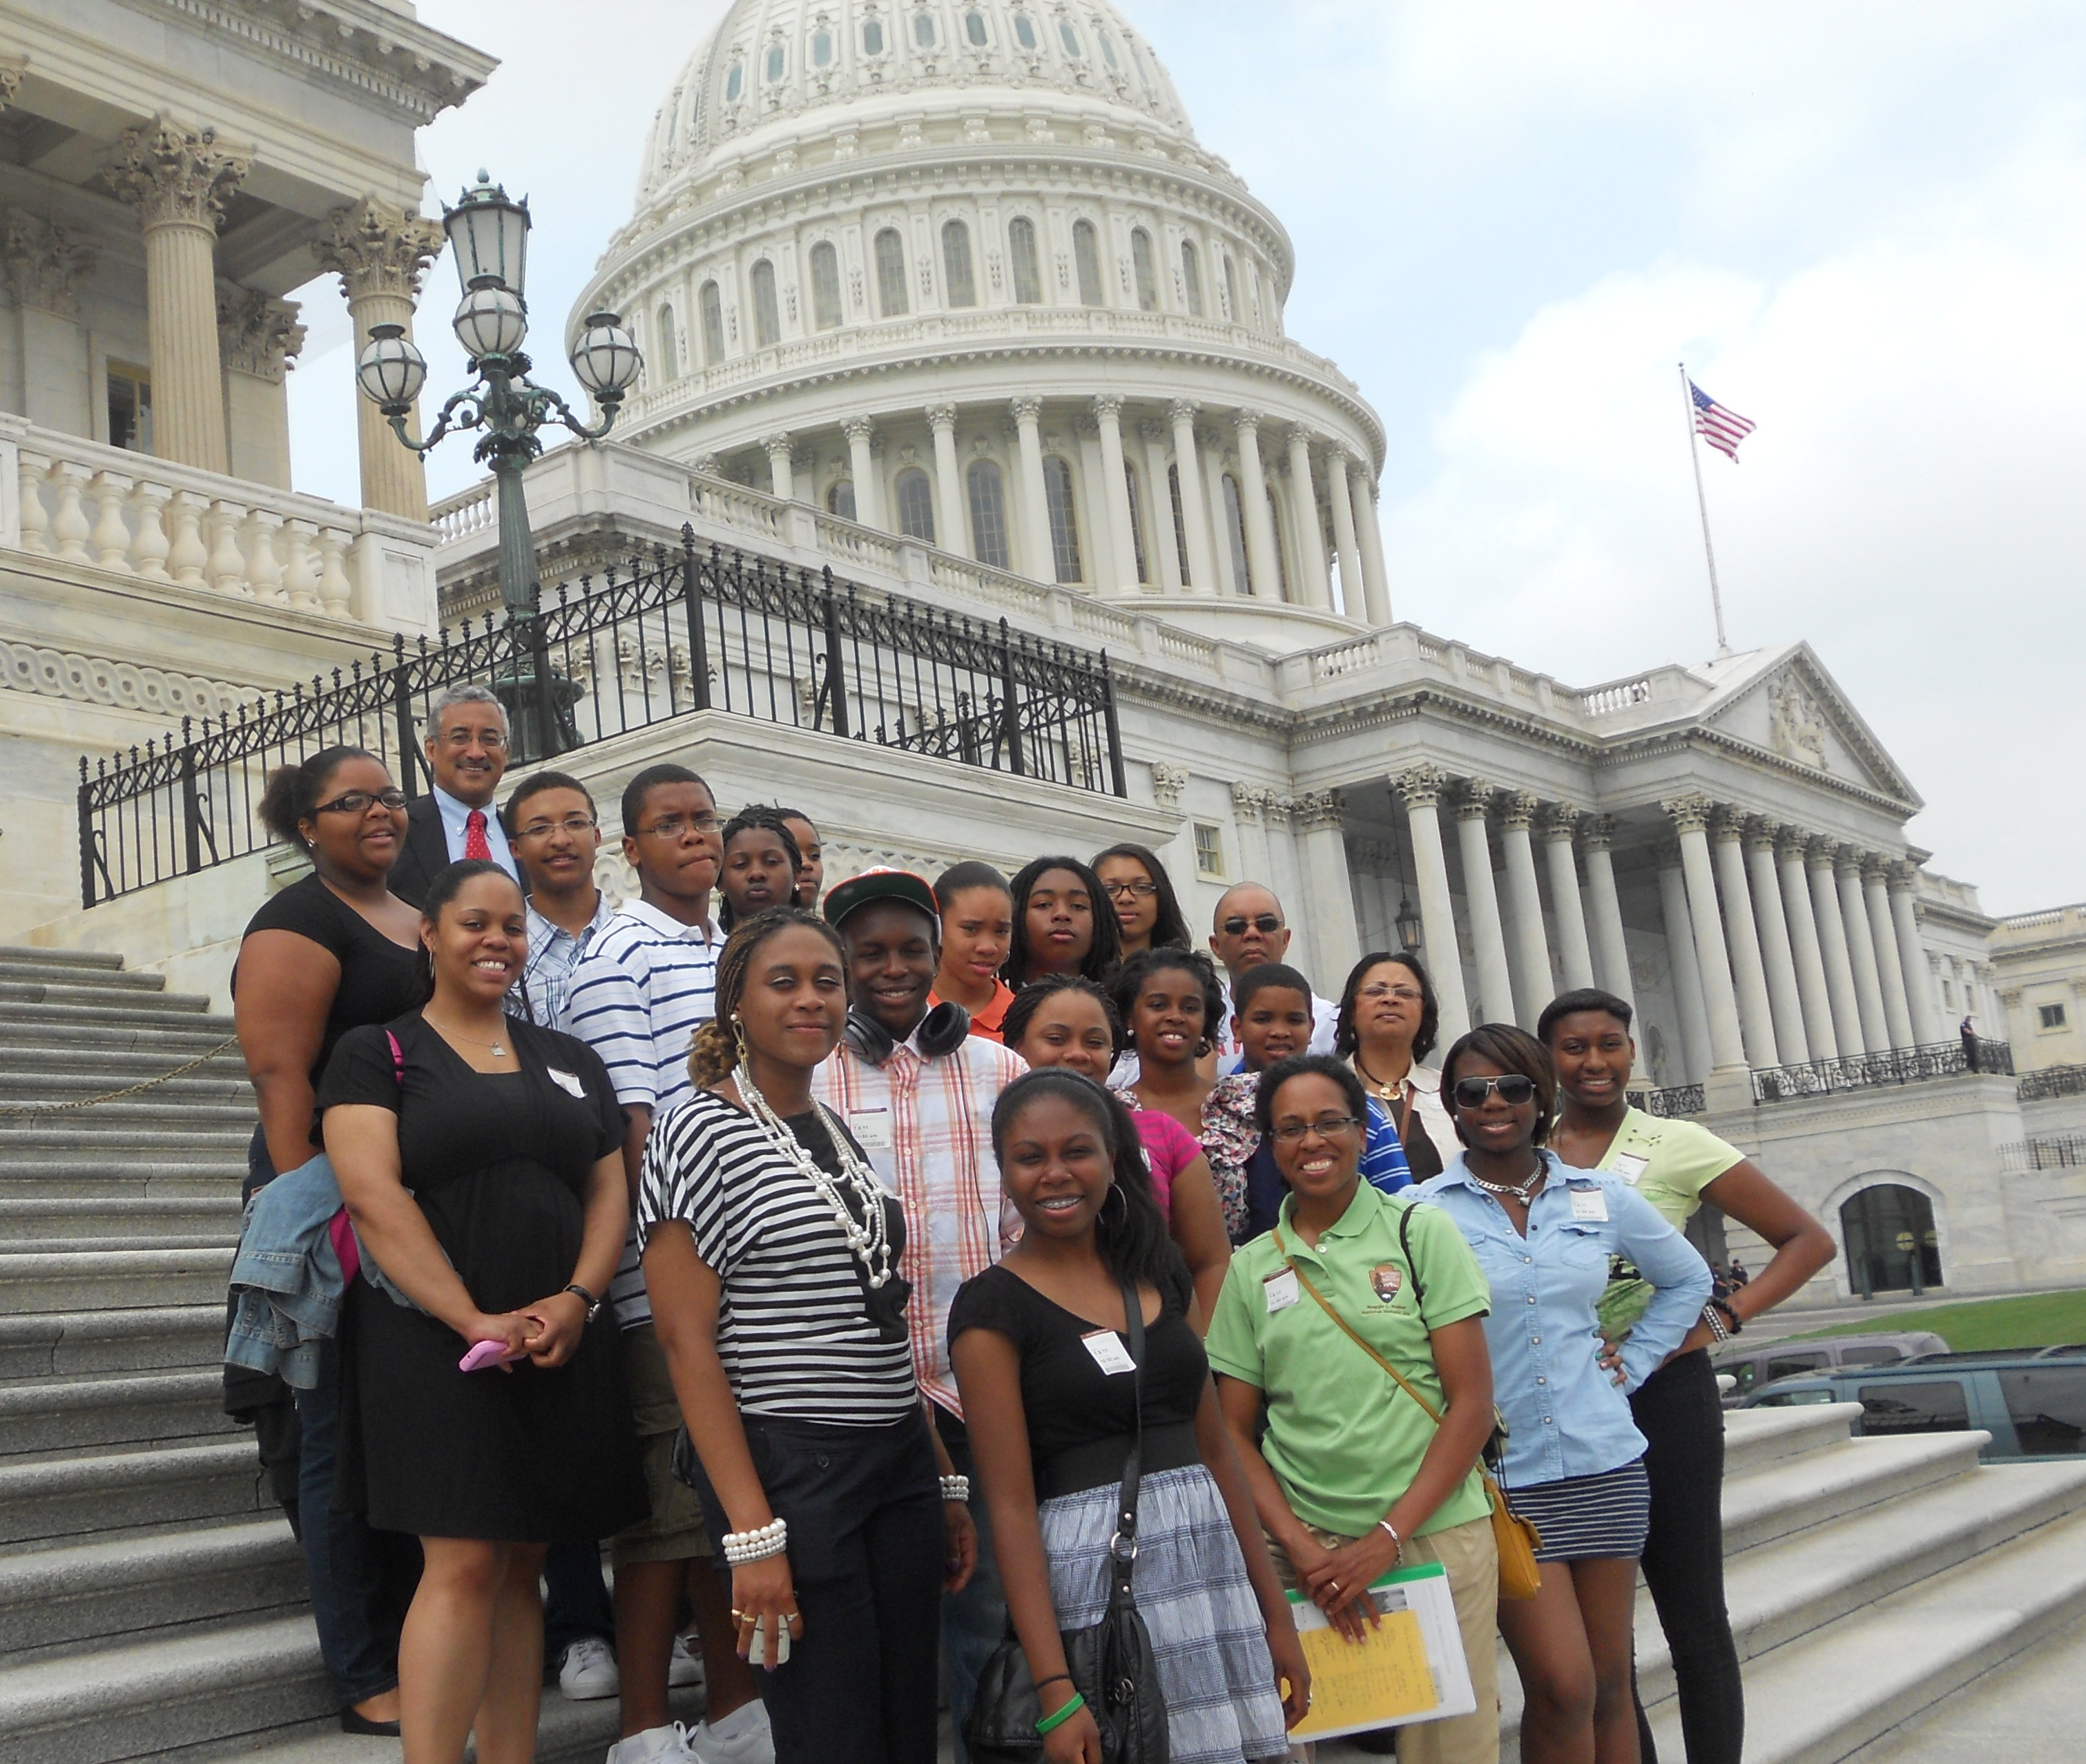 Youth standing on the steps of the U.S Capitol building